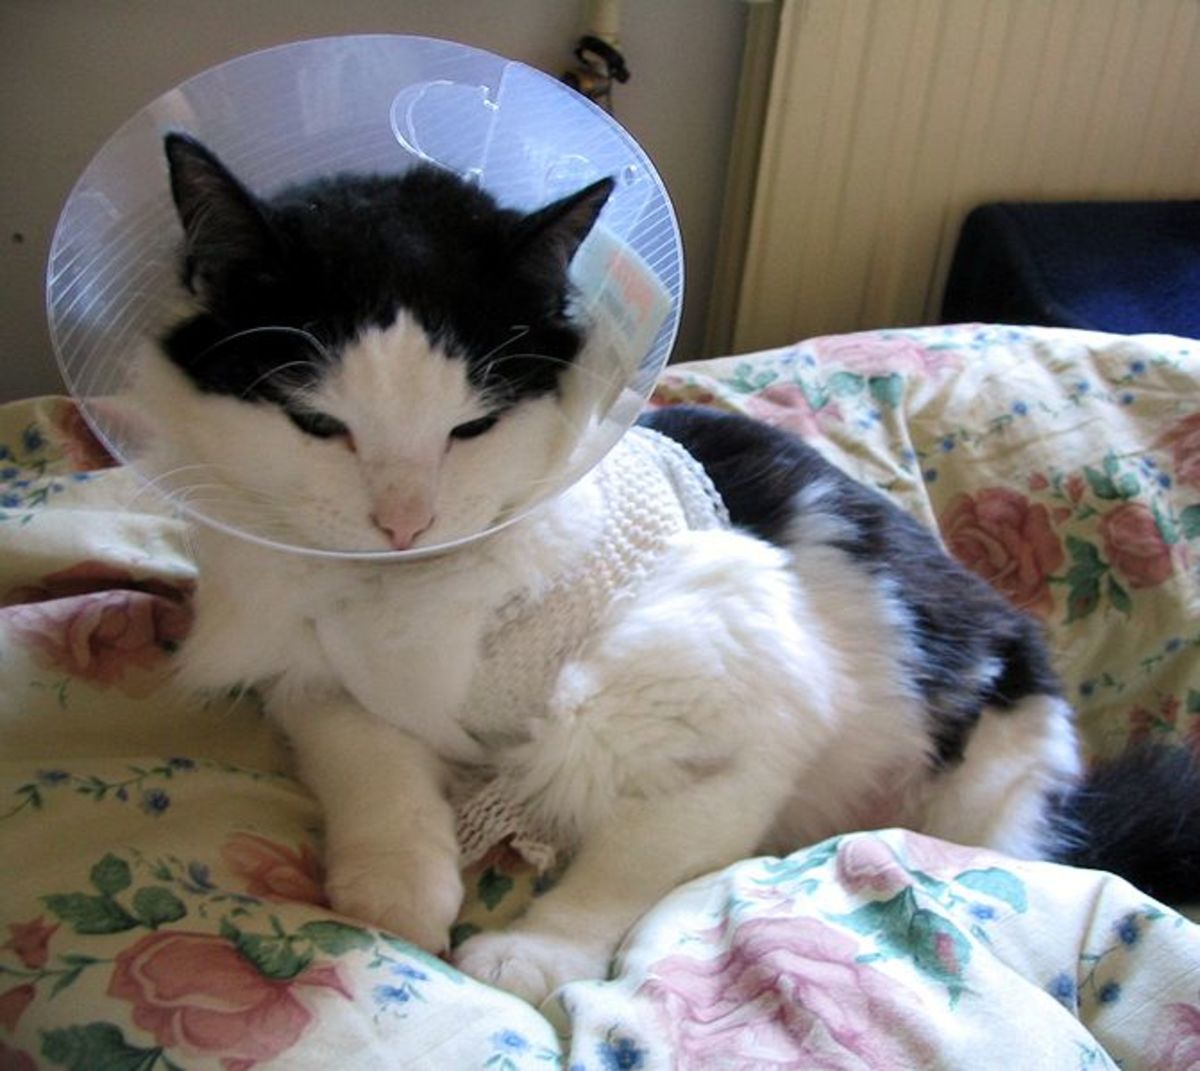 Most pets are given Elizabethan collars to wear after surgery to avoid licking and chewing at surgical wounds and sutures.